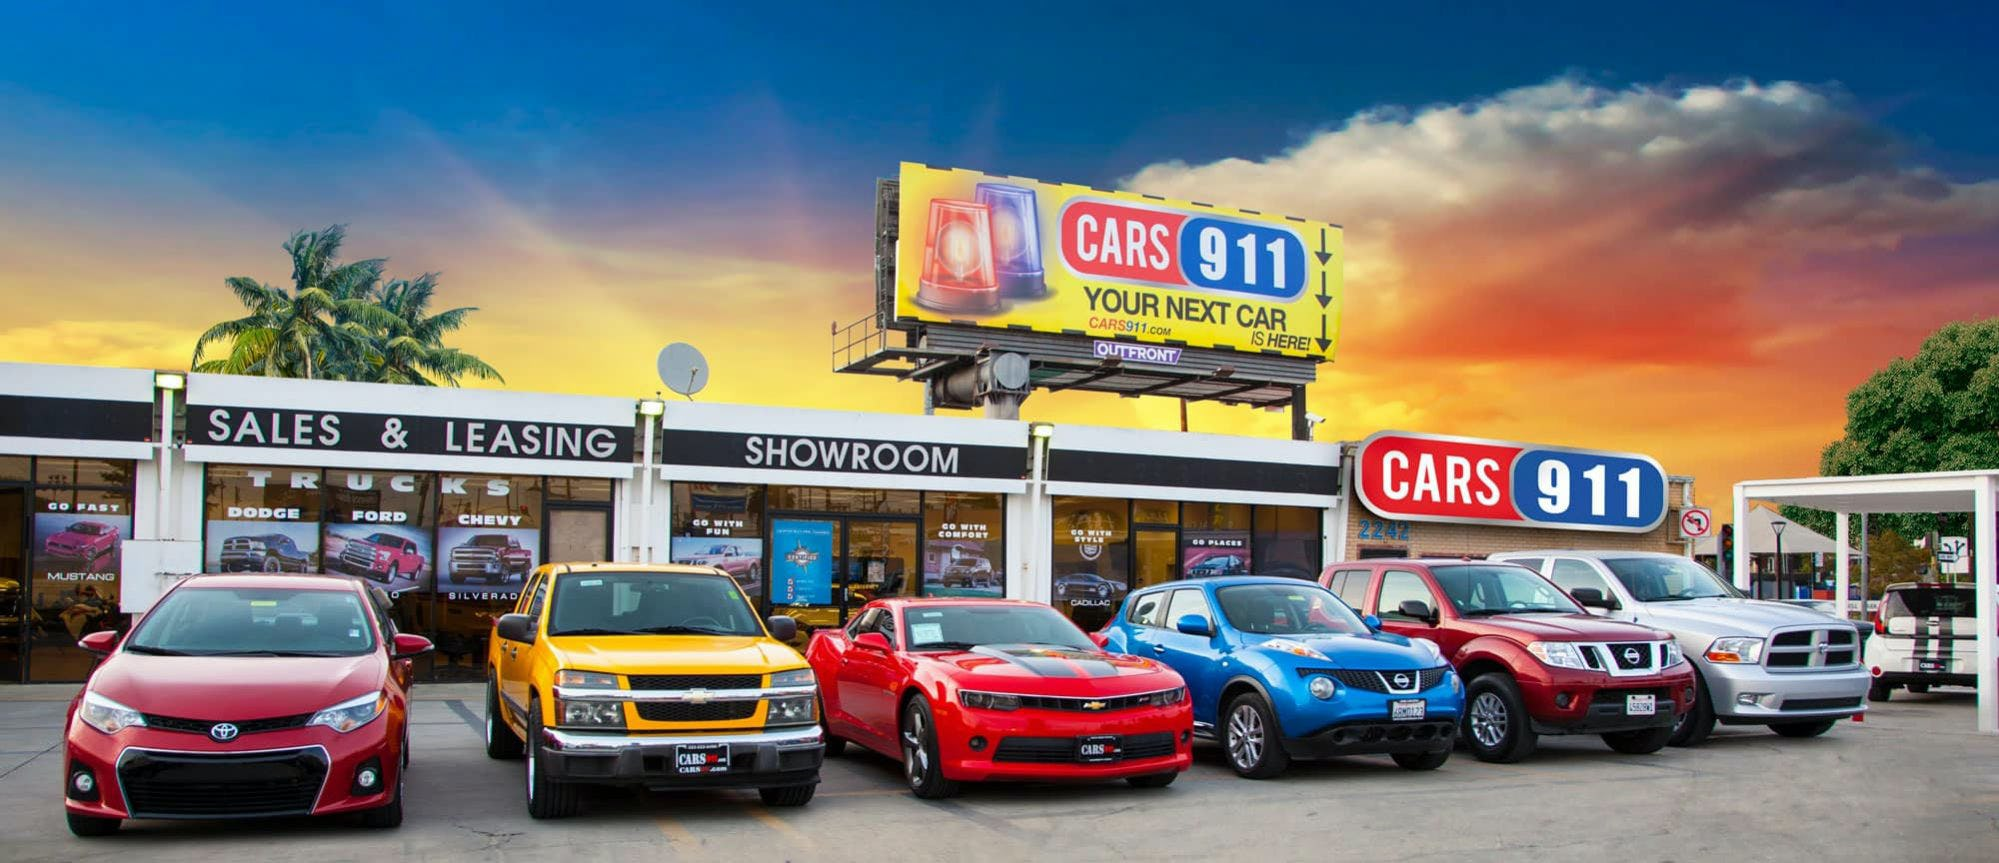 Used Car Dealrships >> Used Car Dealership Best Local Used Cars In Los Angeles Ca 90065